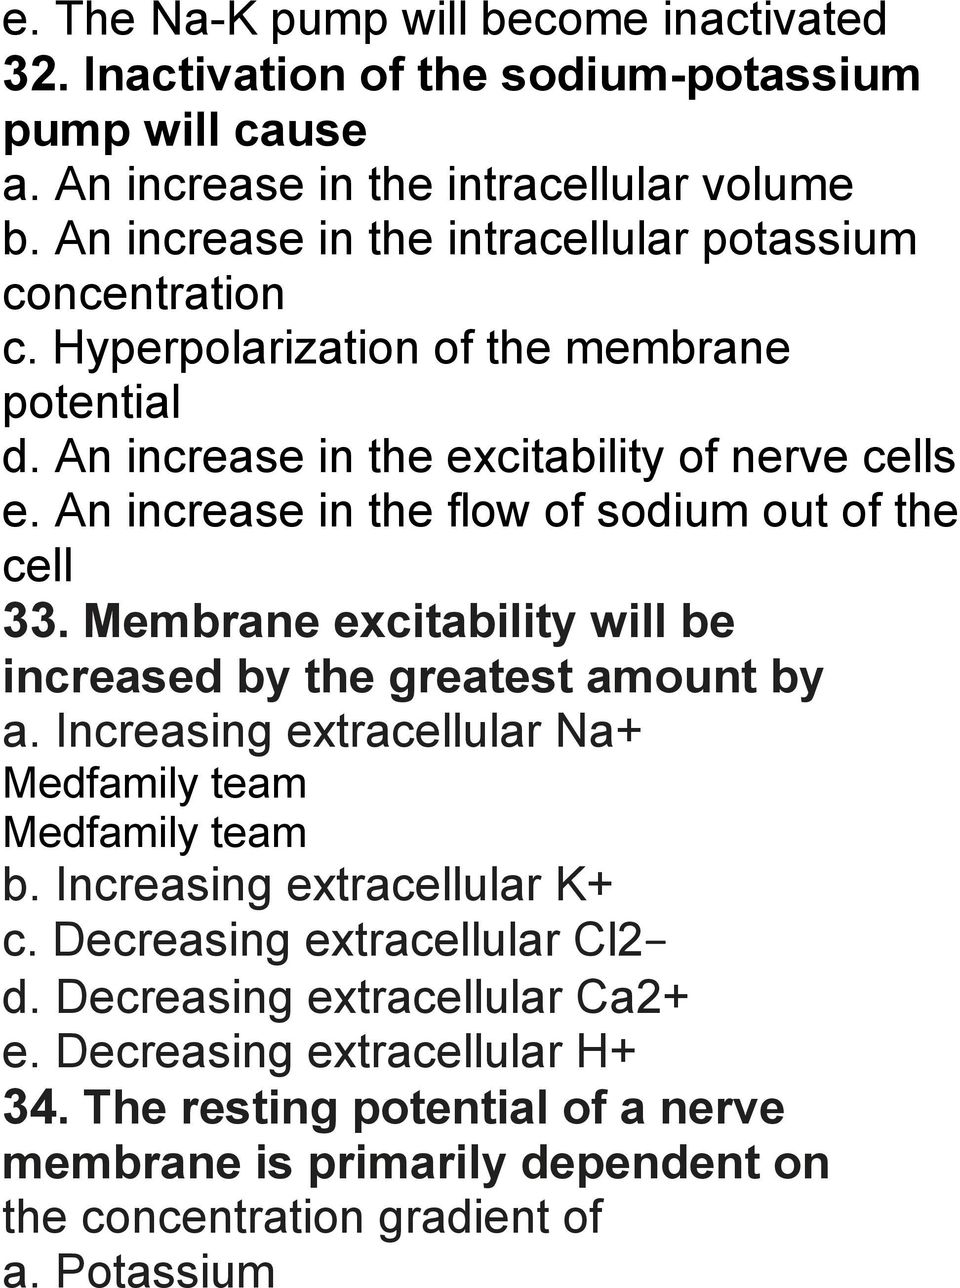 An increase in the flow of sodium out of the cell 33. Membrane excitability will be increased by the greatest amount by a. Increasing extracellular Na+ b.